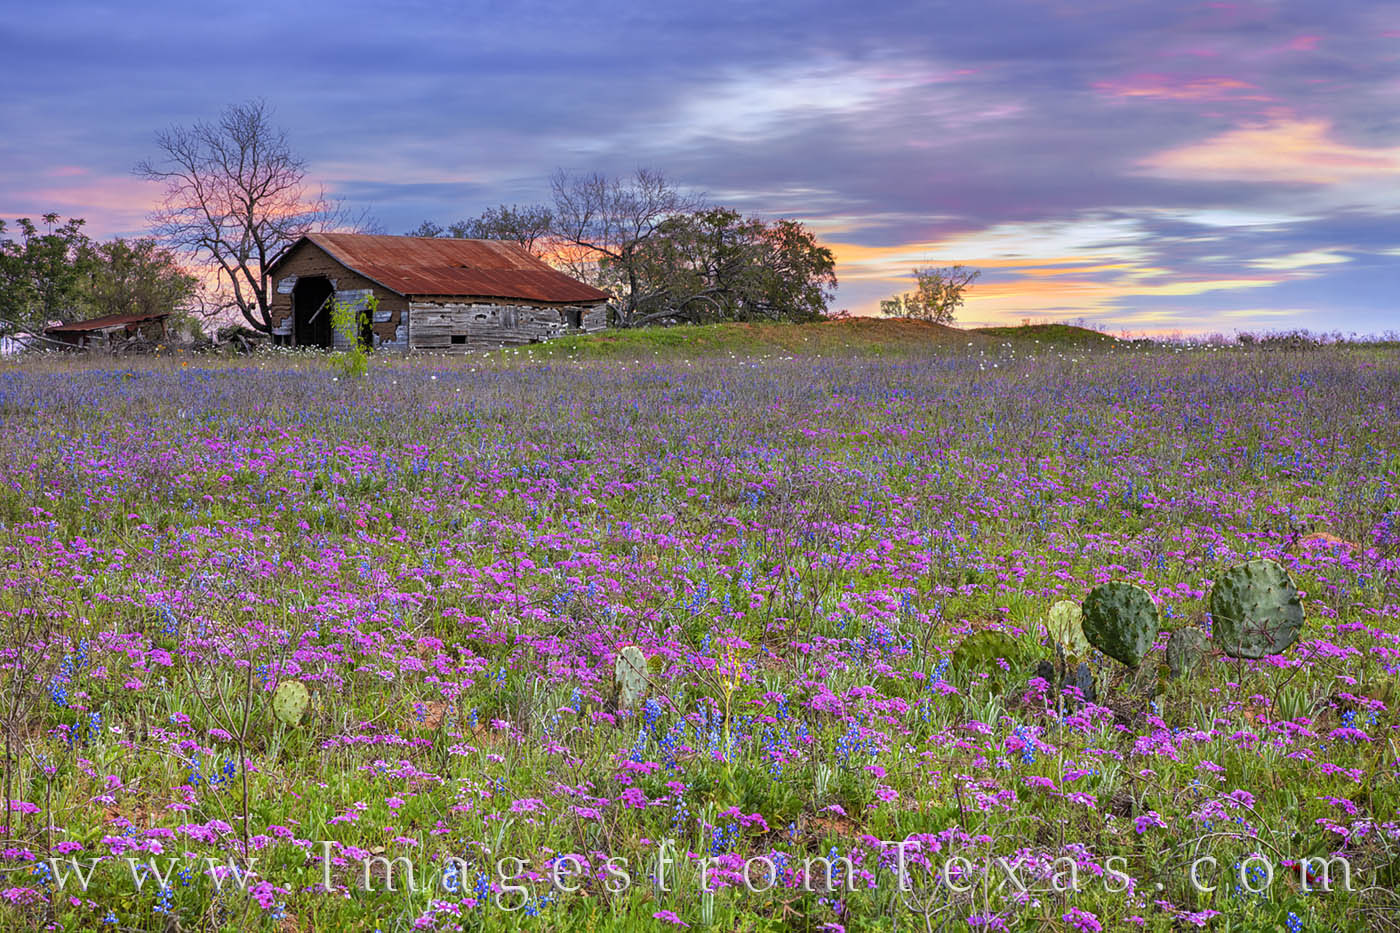 Pink blooms of phlox cover a field on a cool March evening south of San Antonio. In the distance, an old barn still stands, a...